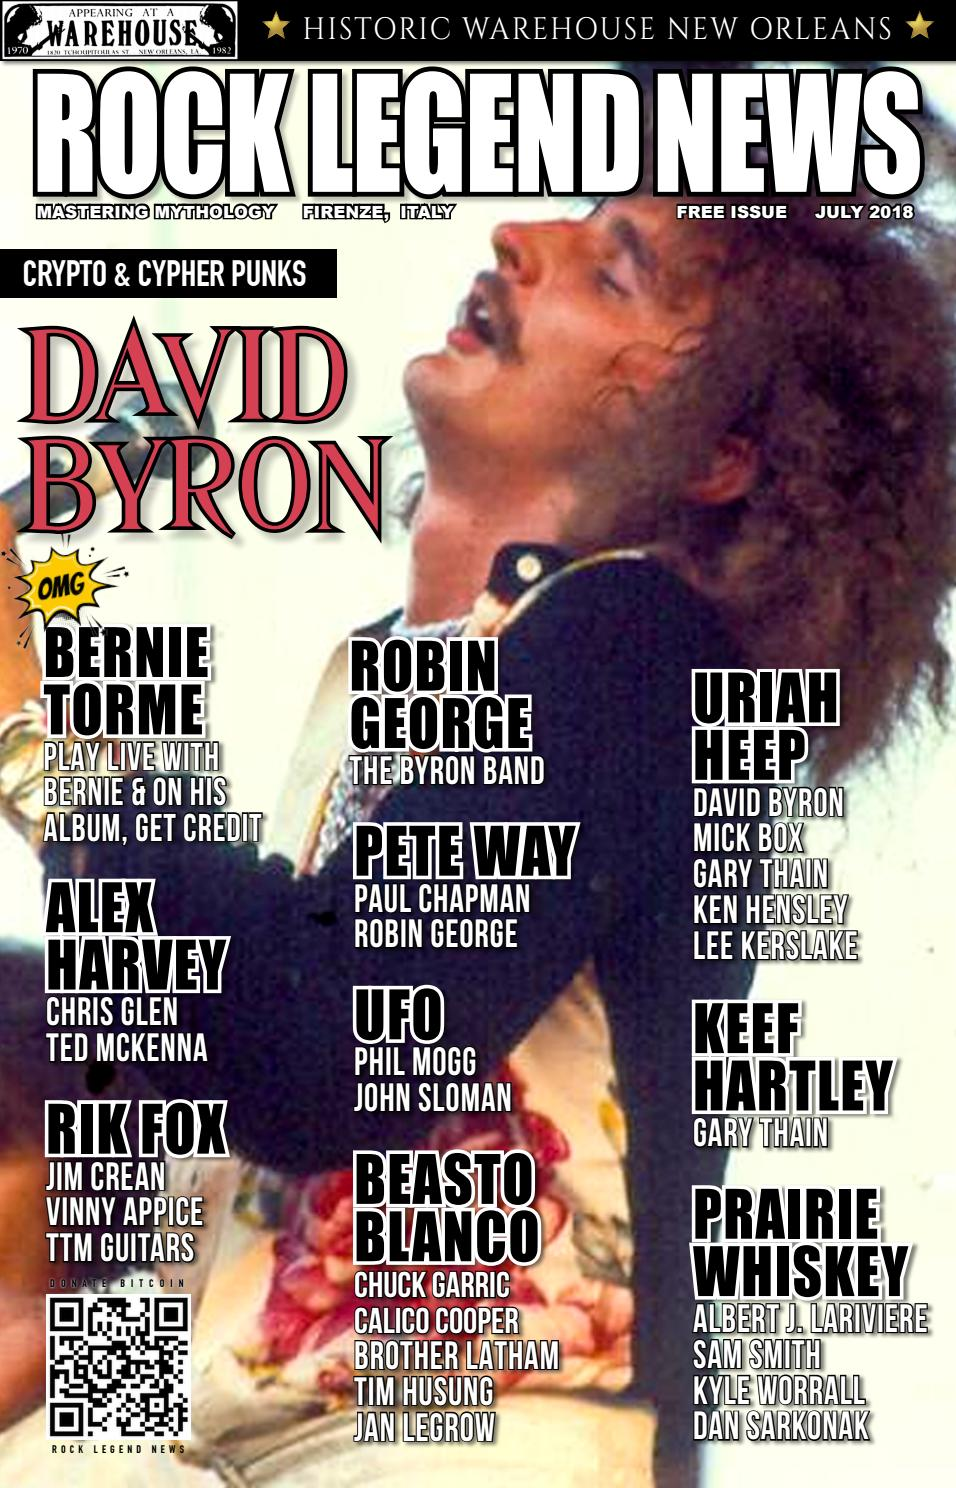 Rock Legend News July 2018 Issue Featuring David Byron